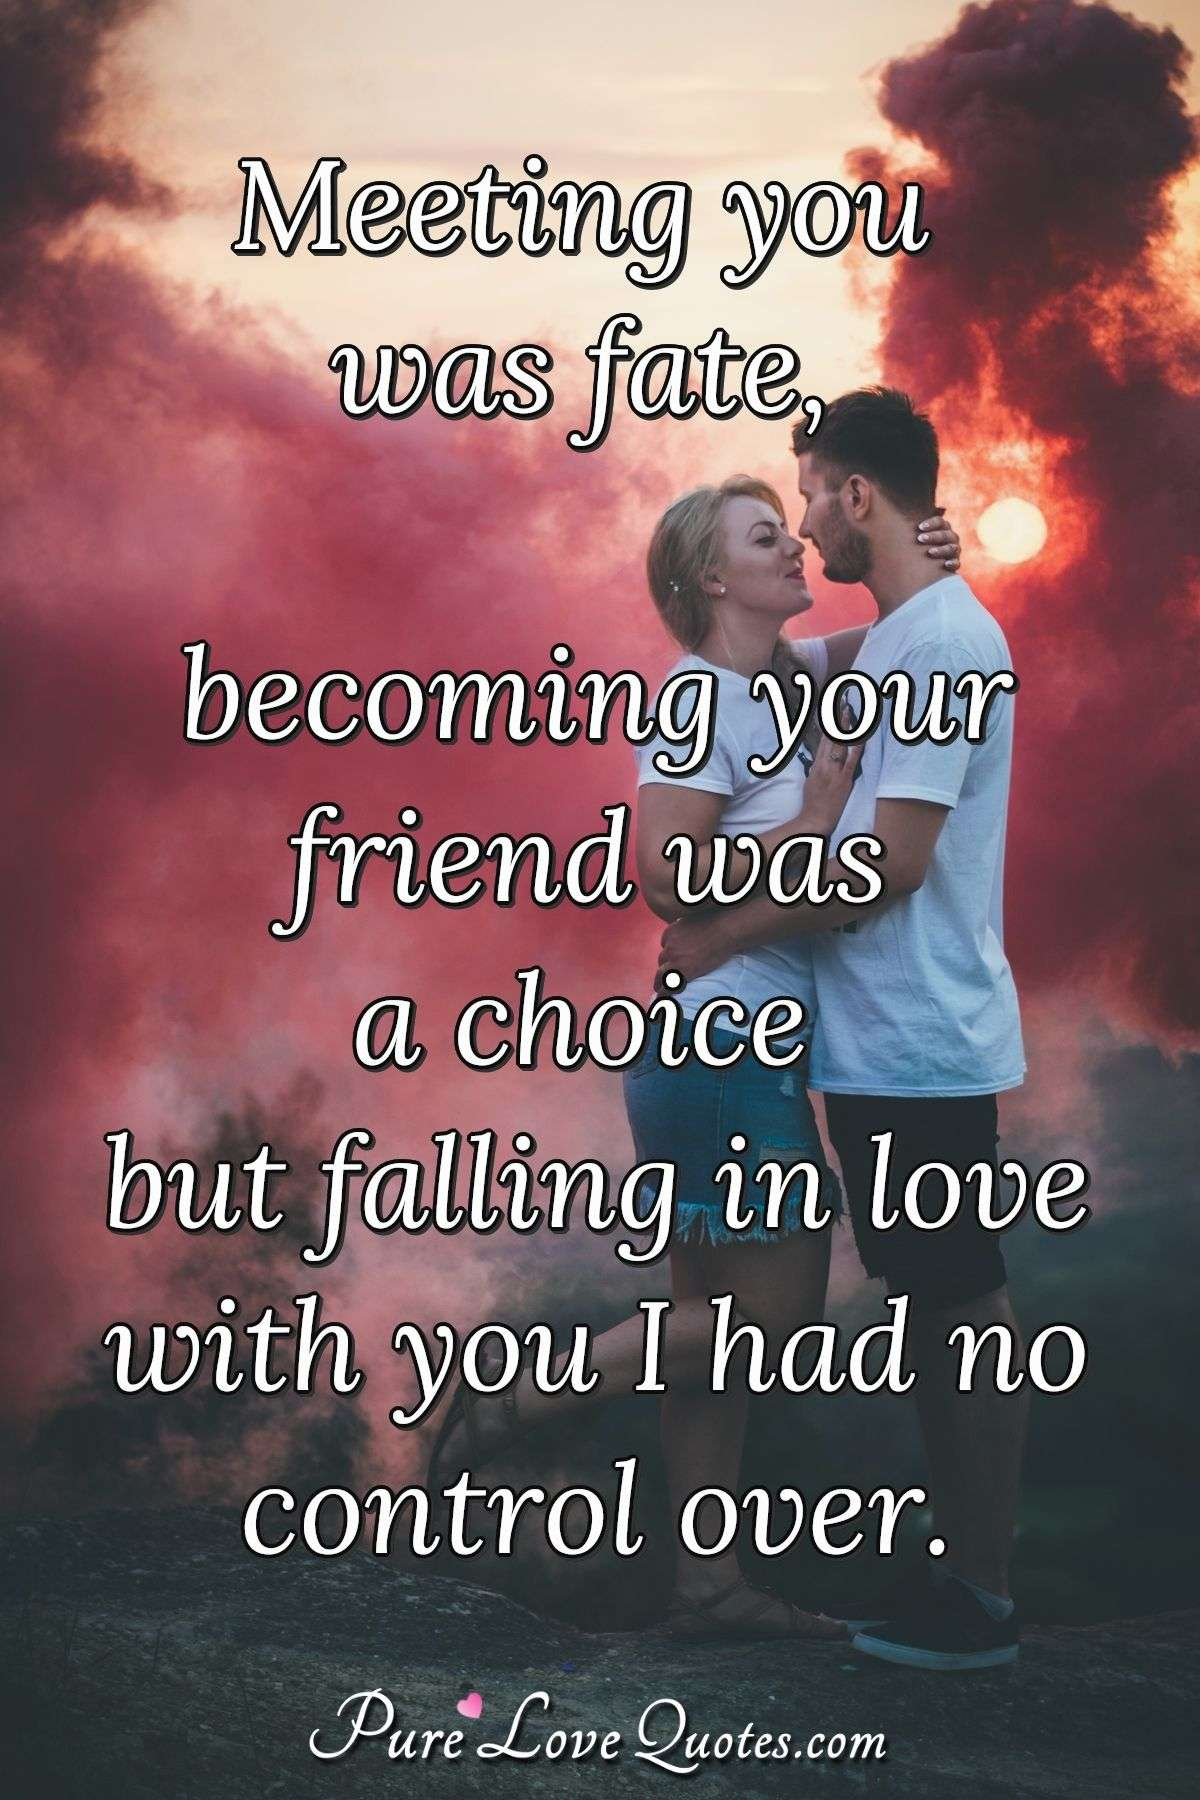 Meeting you was fate, becoming your friend was a choice but falling in love with you I had no control over. - Anonymous